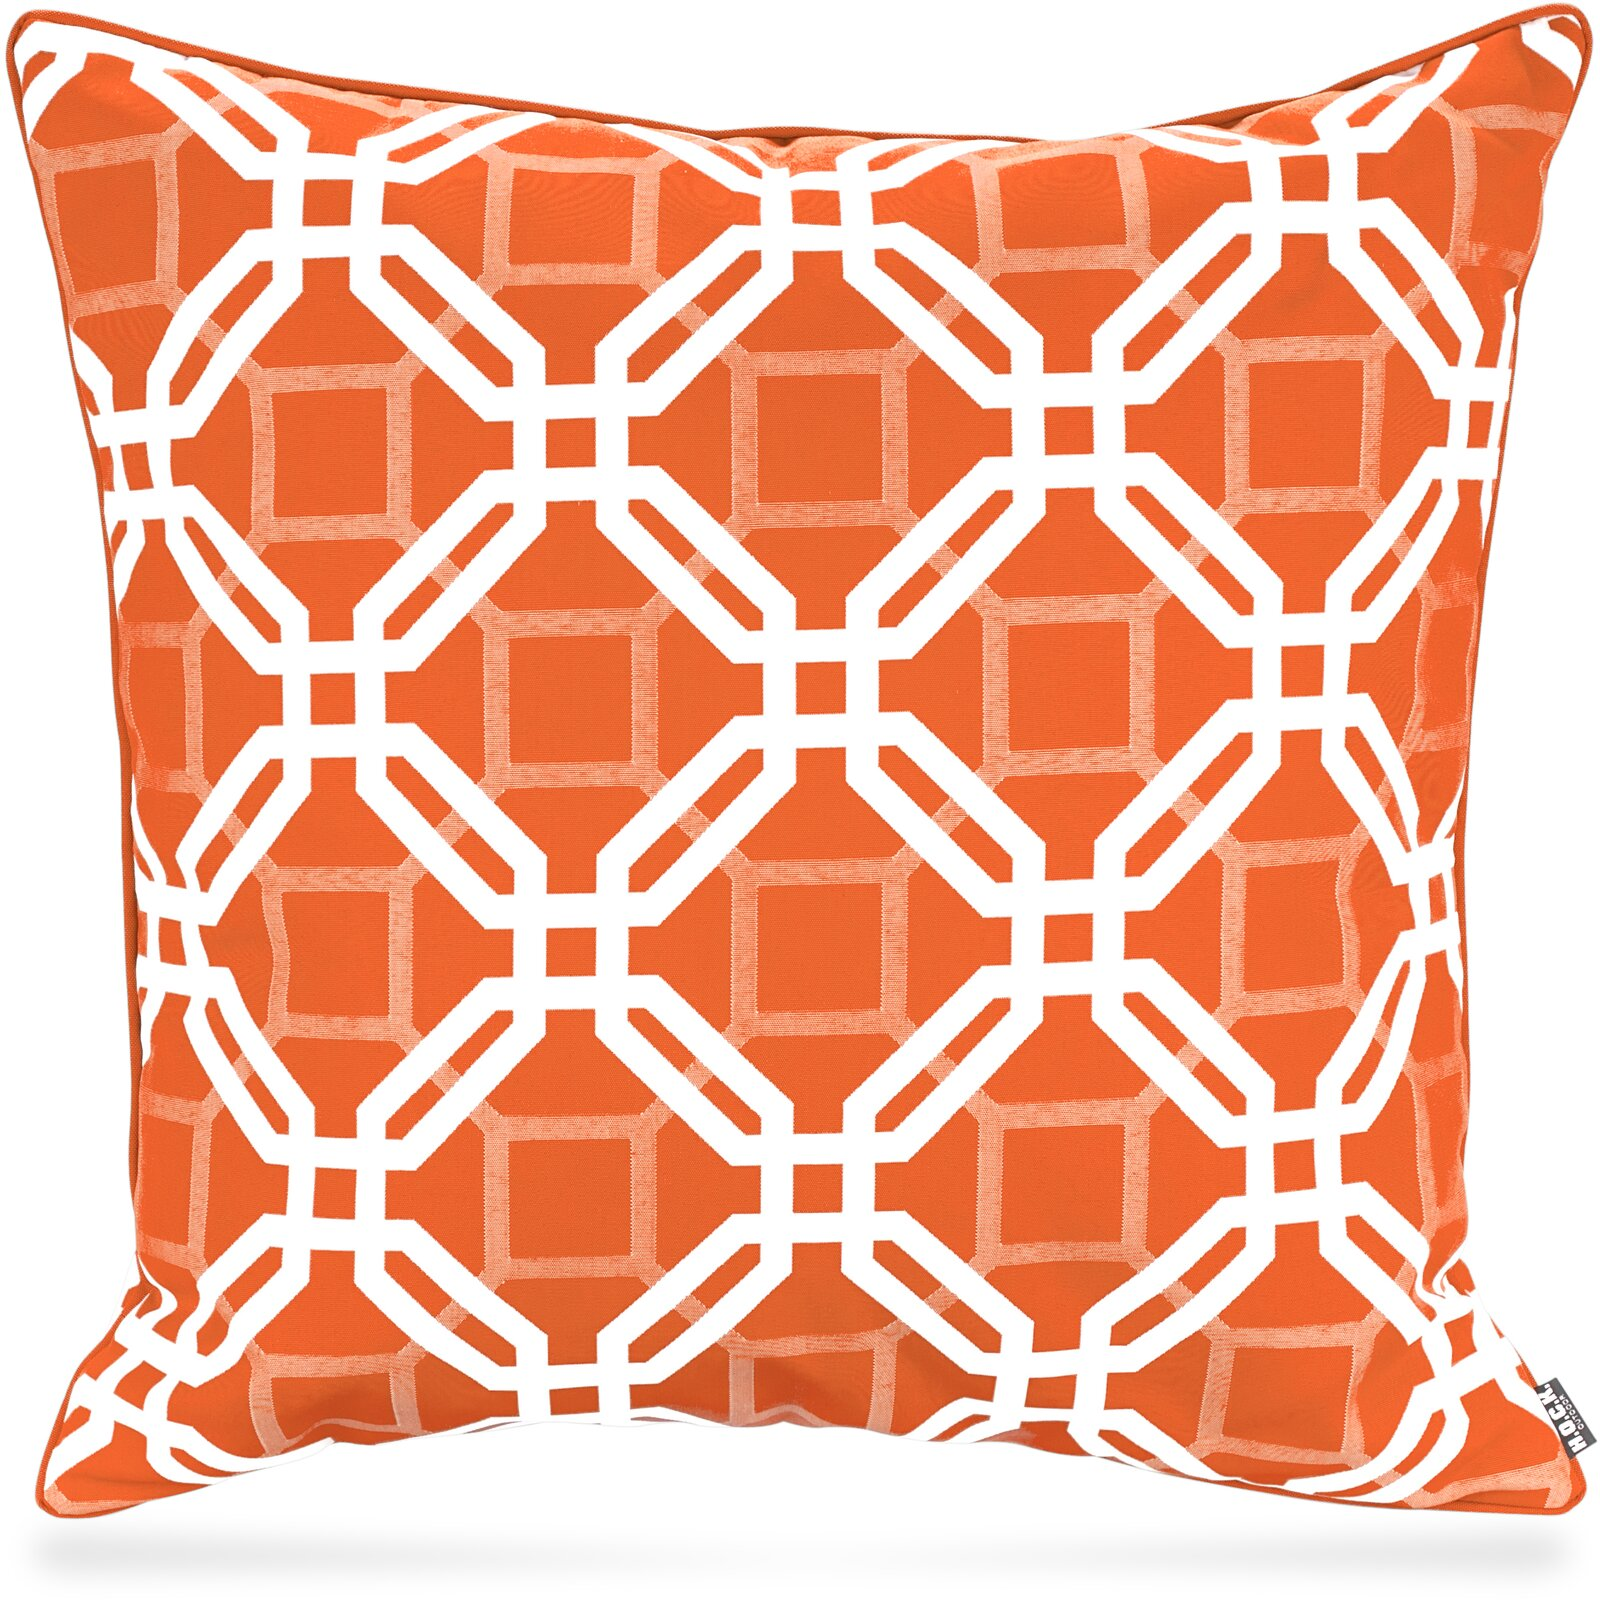 H.O.C.K. Natolda Outdoor Kissen 60x60cm orange 101 sun